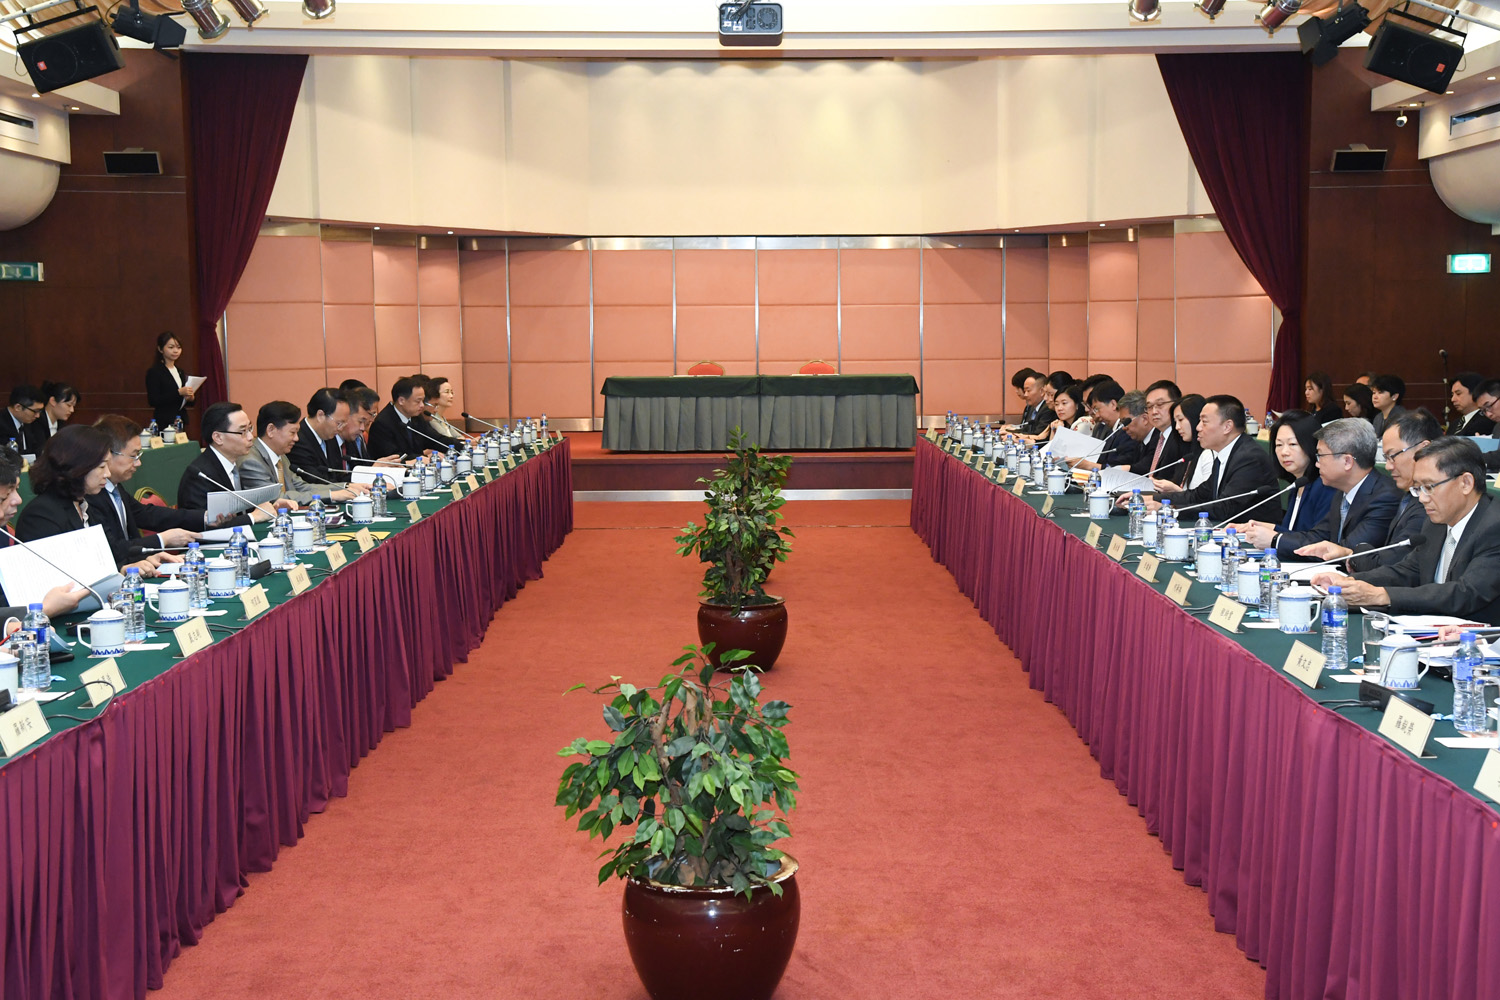 The Zhuhai-Macao Co-operation Conference 2017 held in Macao